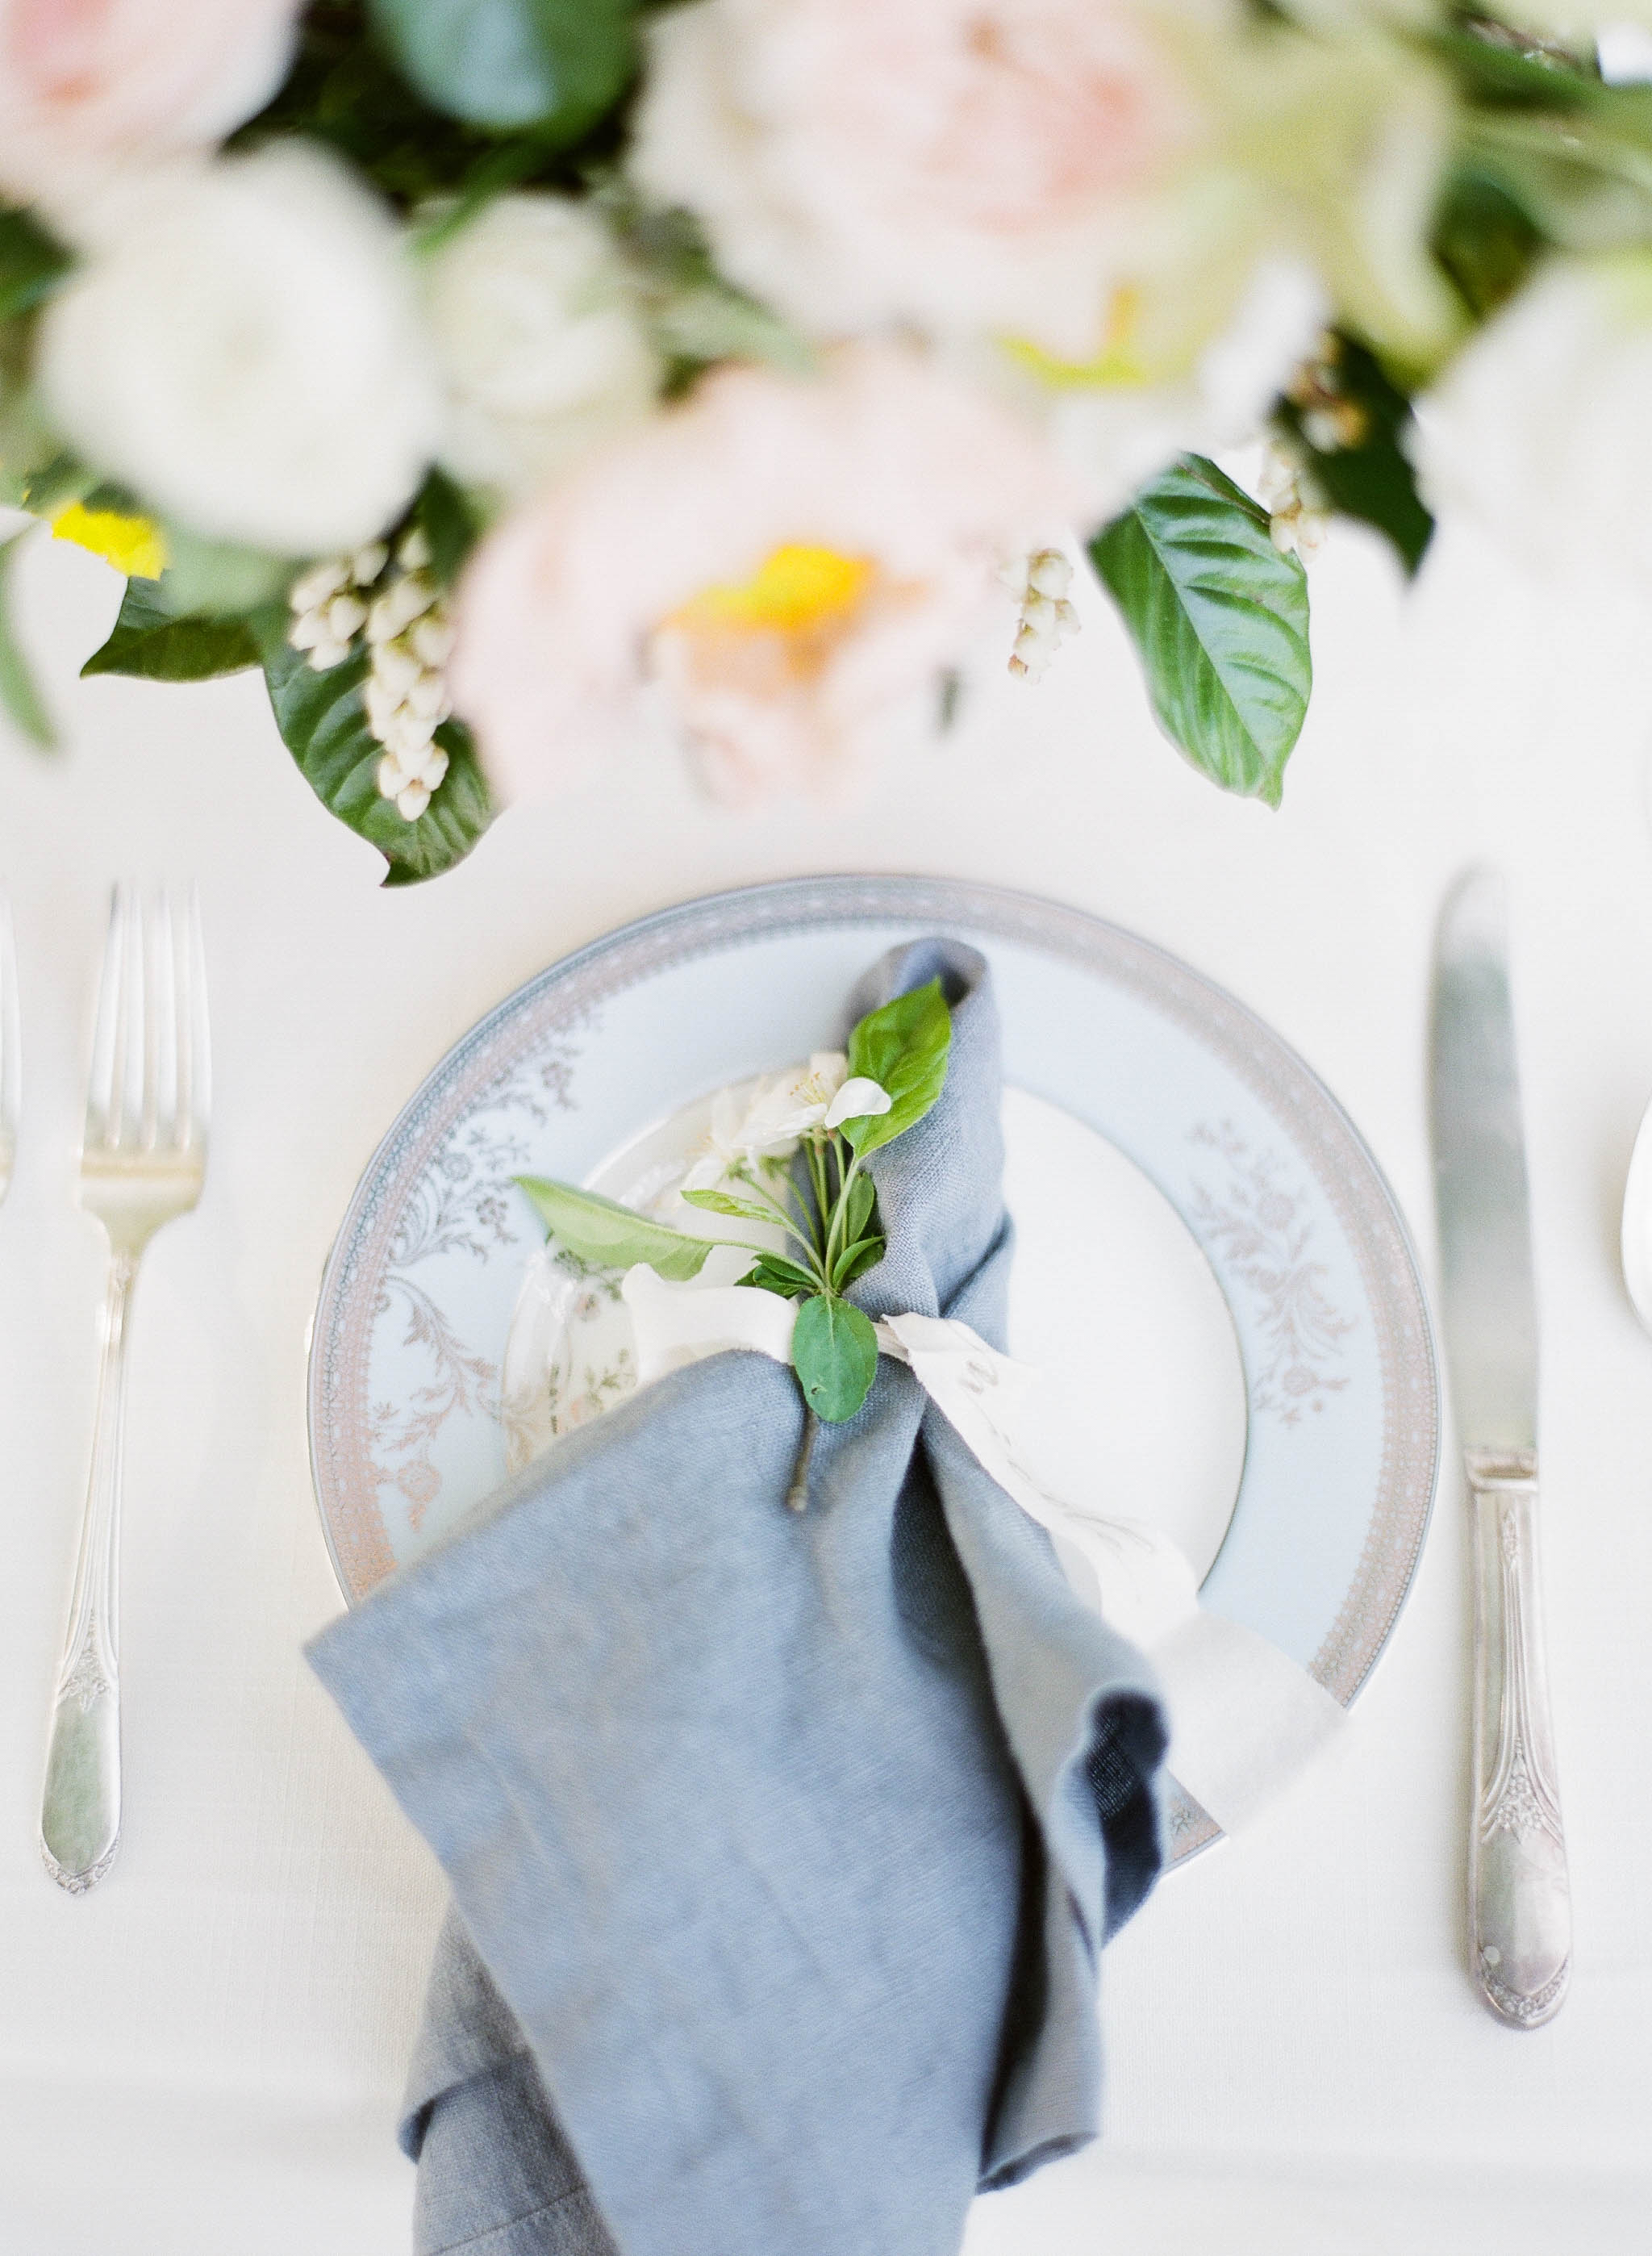 Trying to wrap this up nicely and hopefully give you a little bit more will power for your venture! Photography by Jennifer Kulakowski with planning by  Linda Ha Events & Designs .